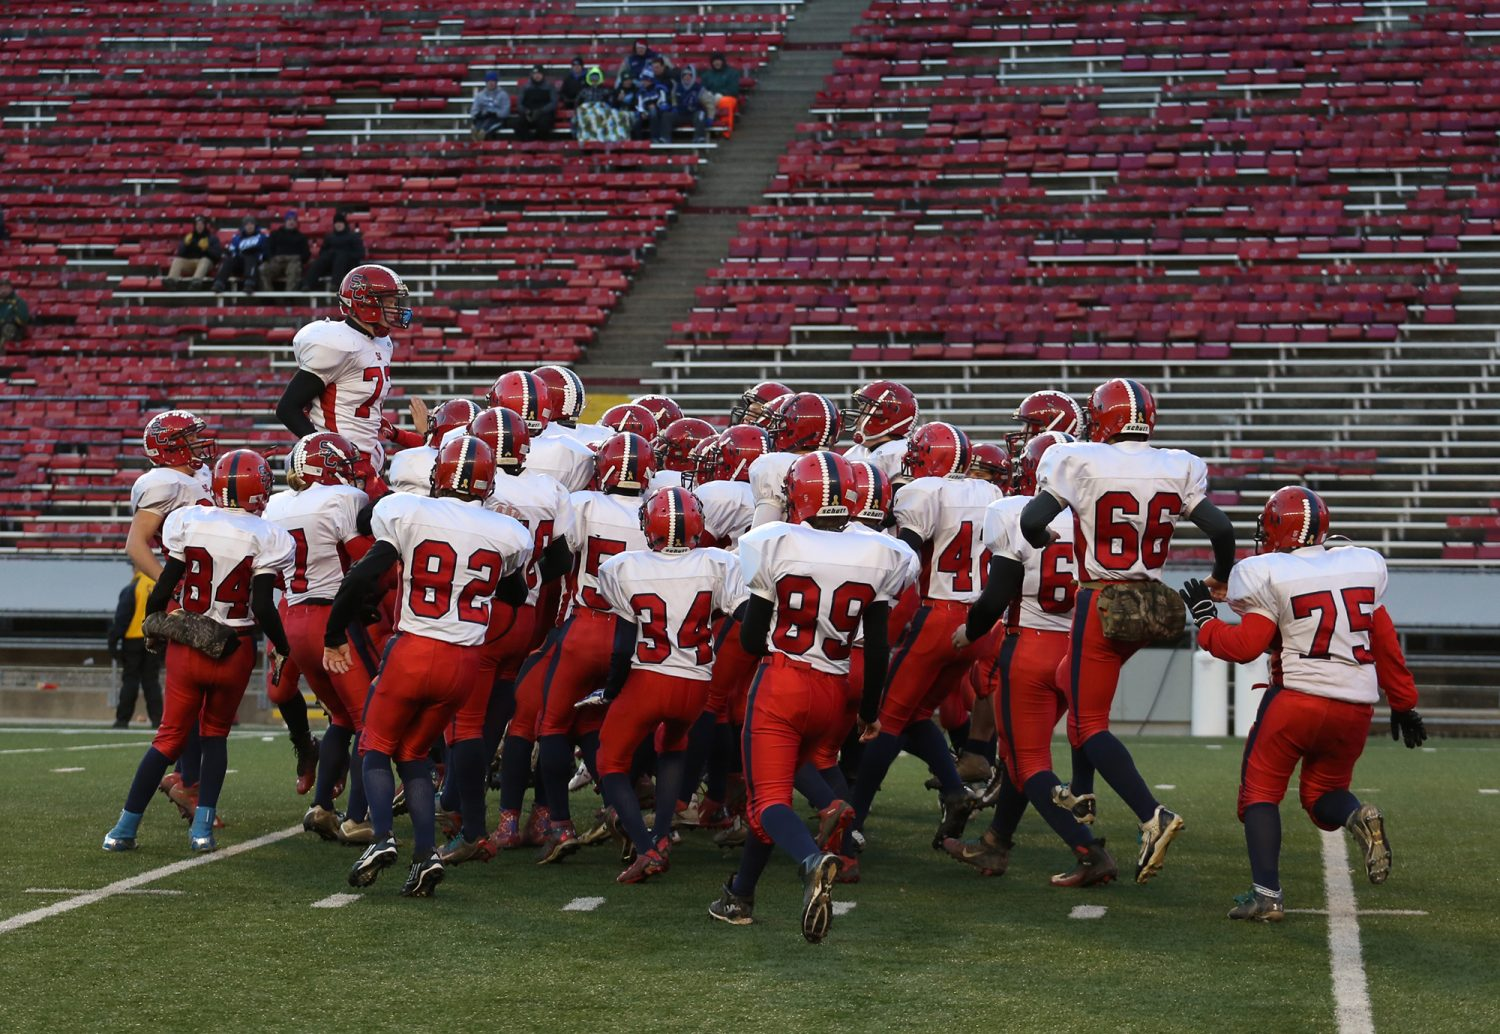 Spencer/Columbus' Dakota Andreae jumps above his teammates as the Rockets were introduced before losing to Amherst 42-0 in the WIAA Division 5 State Championship Game at Camp Randall Stadium in Madison, Thursday, Nov. 19, 2015.